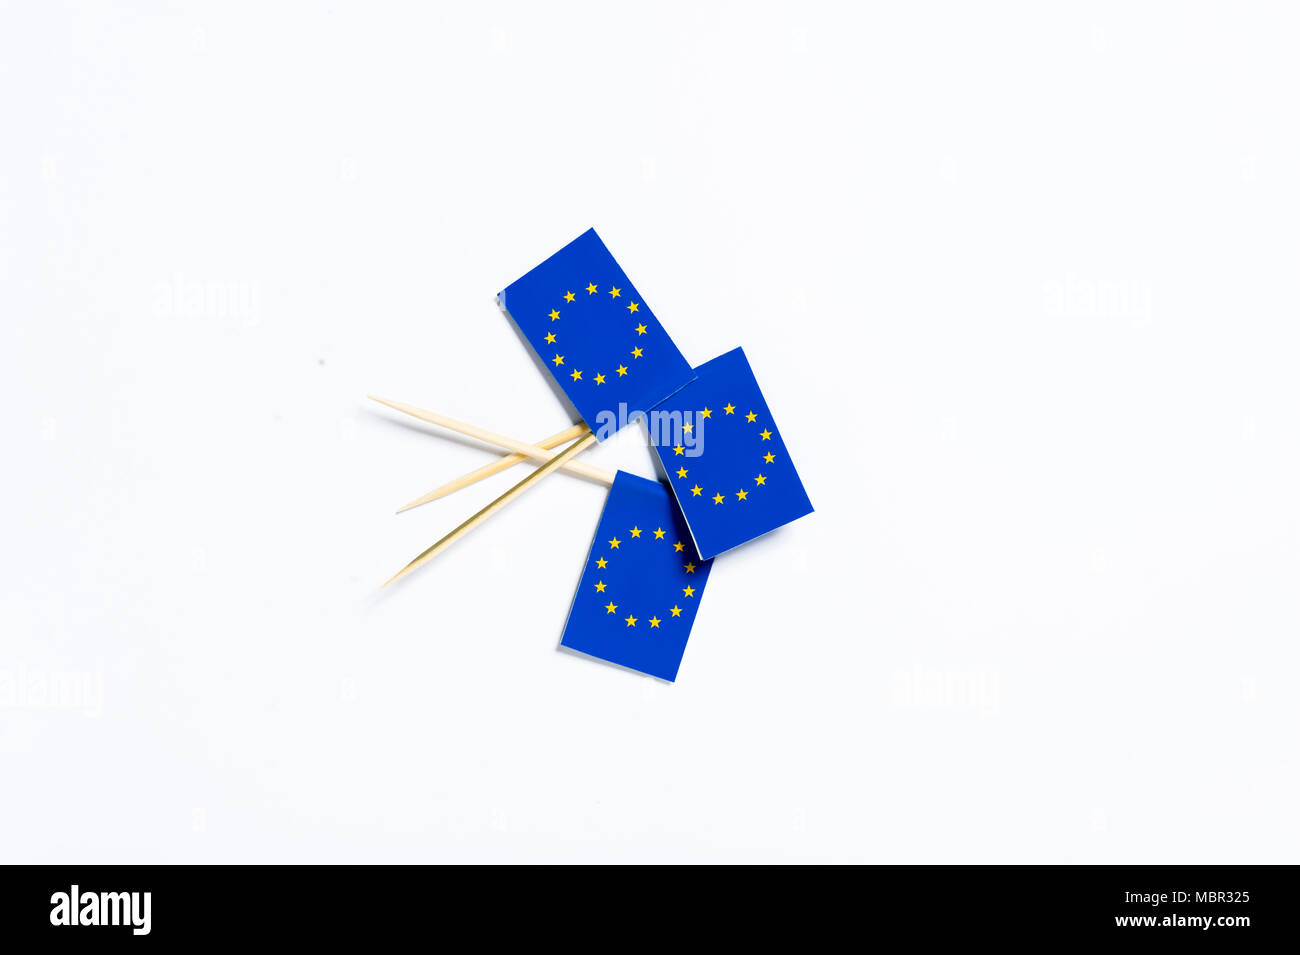 Three European Union flags on a white background - Stock Image